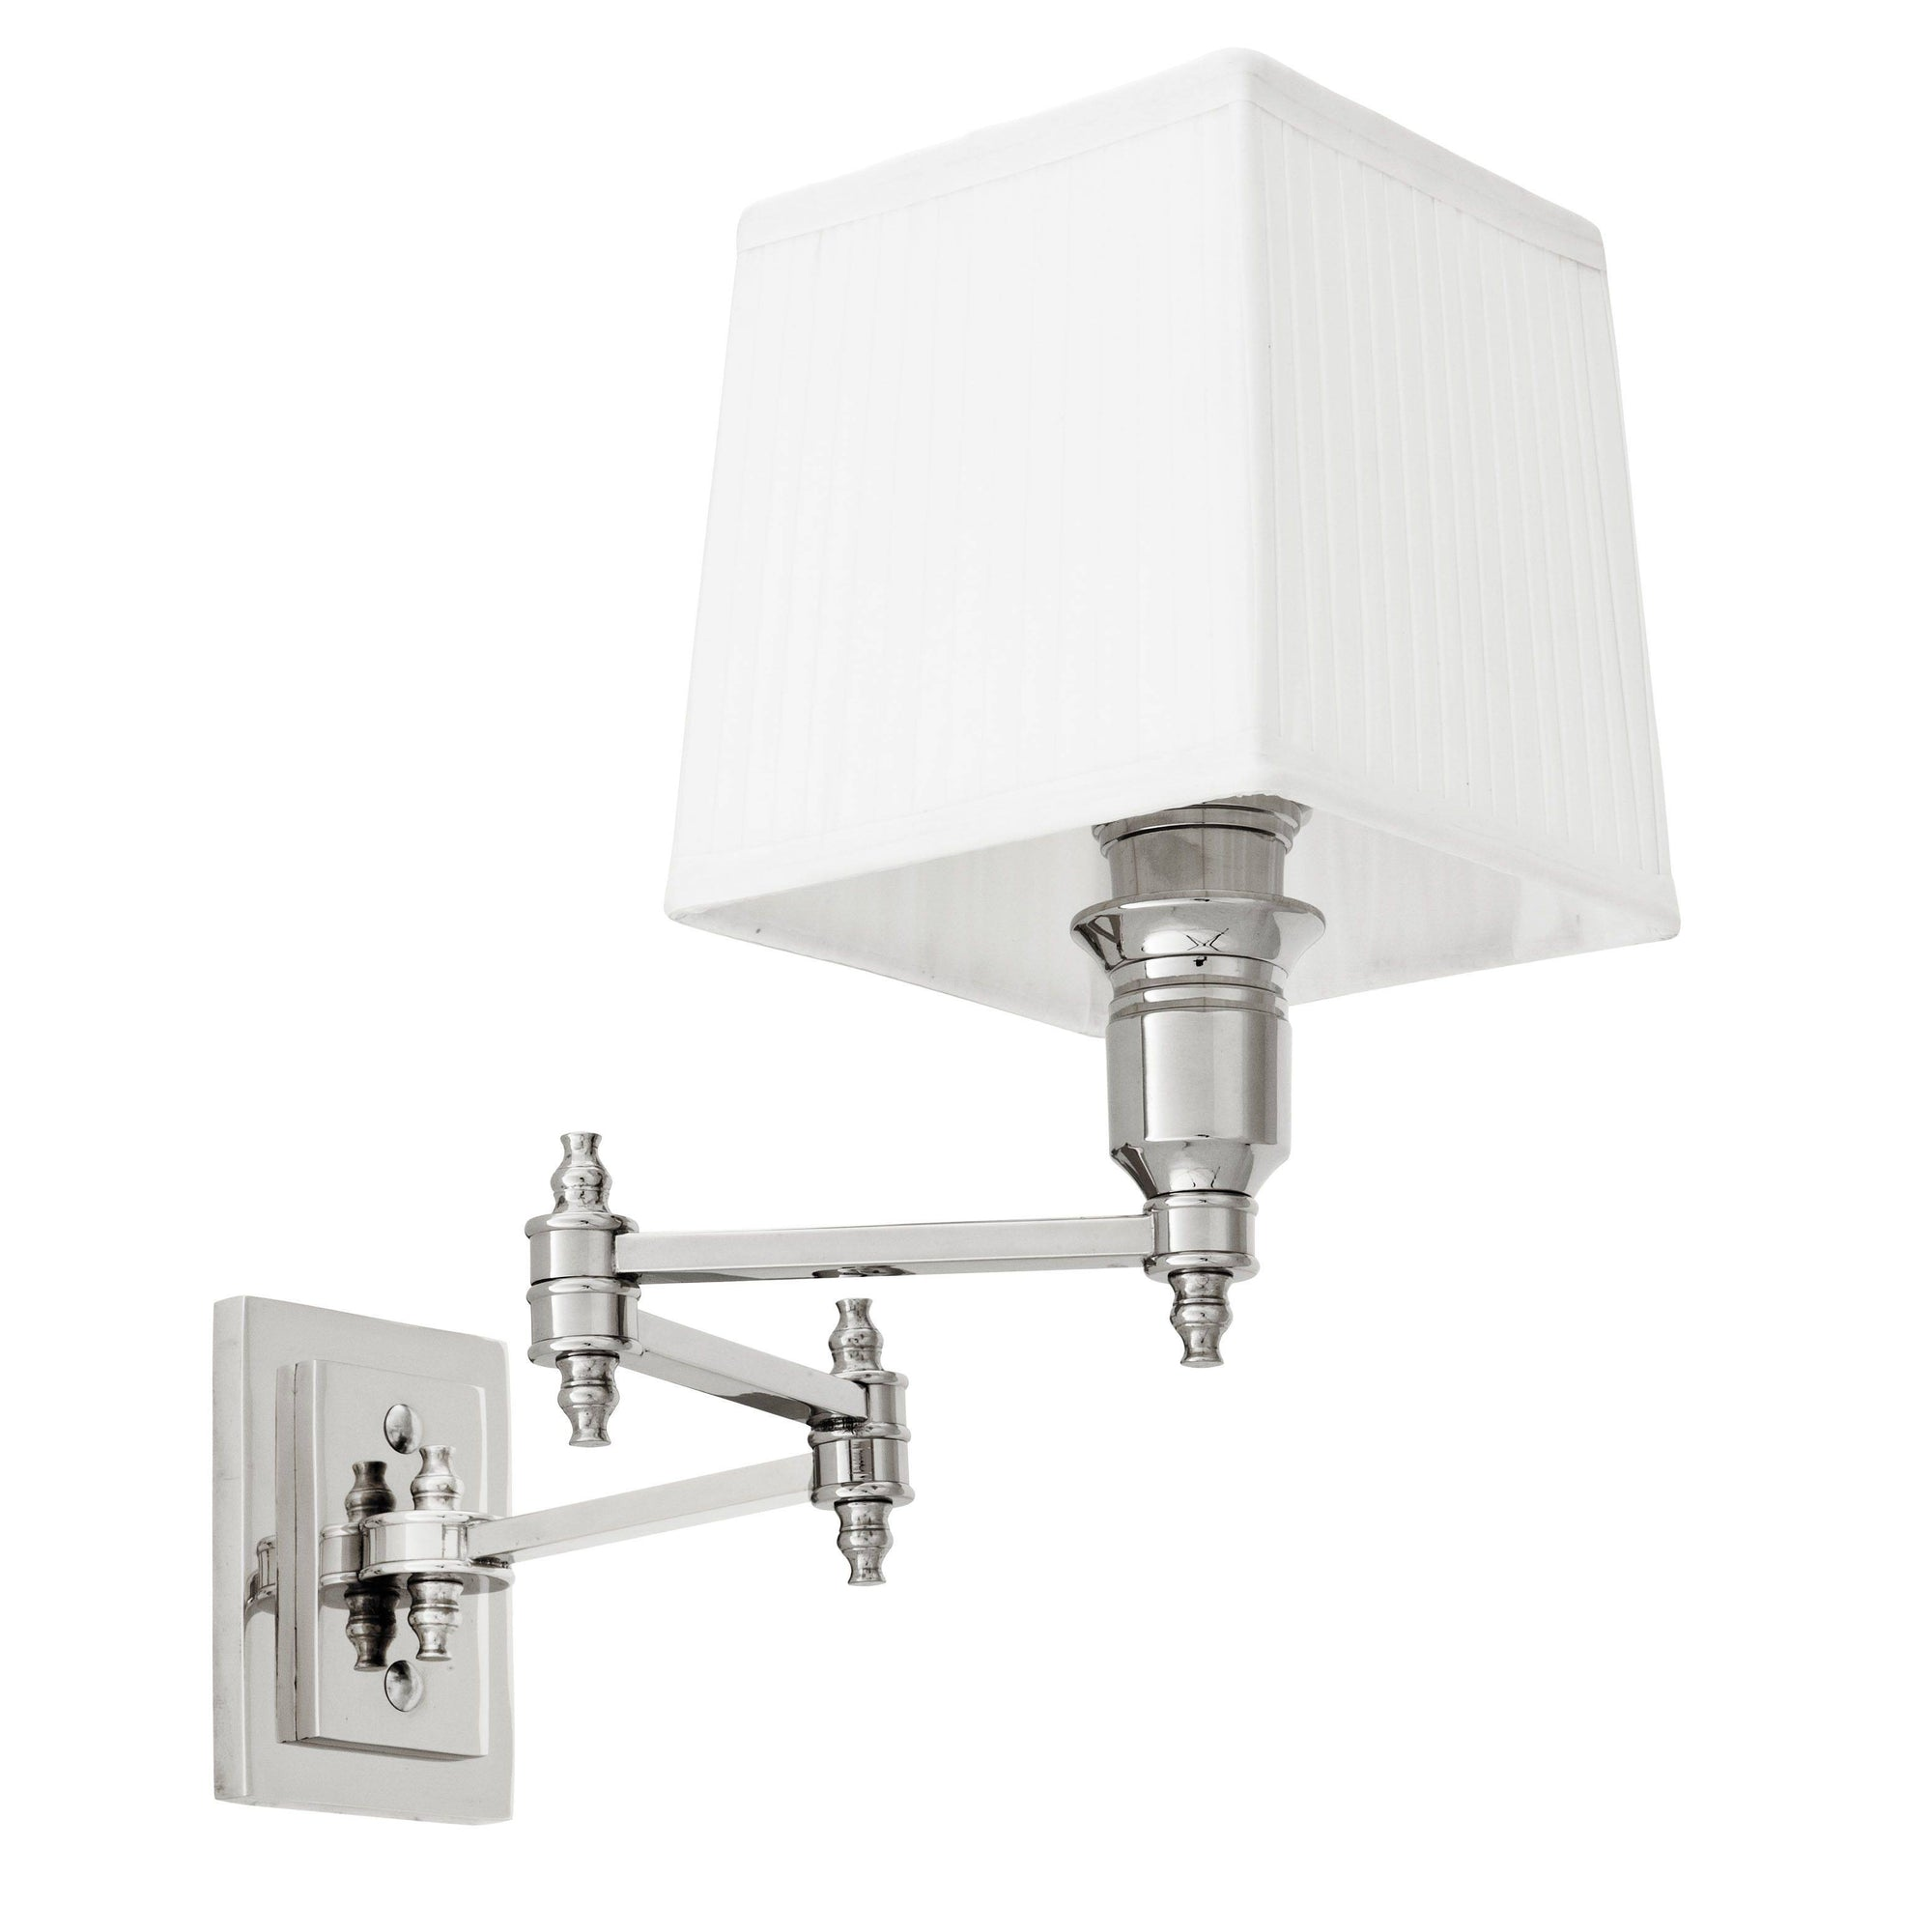 SILVER SWING WALL LAMP | EICHHOLTZ LEXINGTON